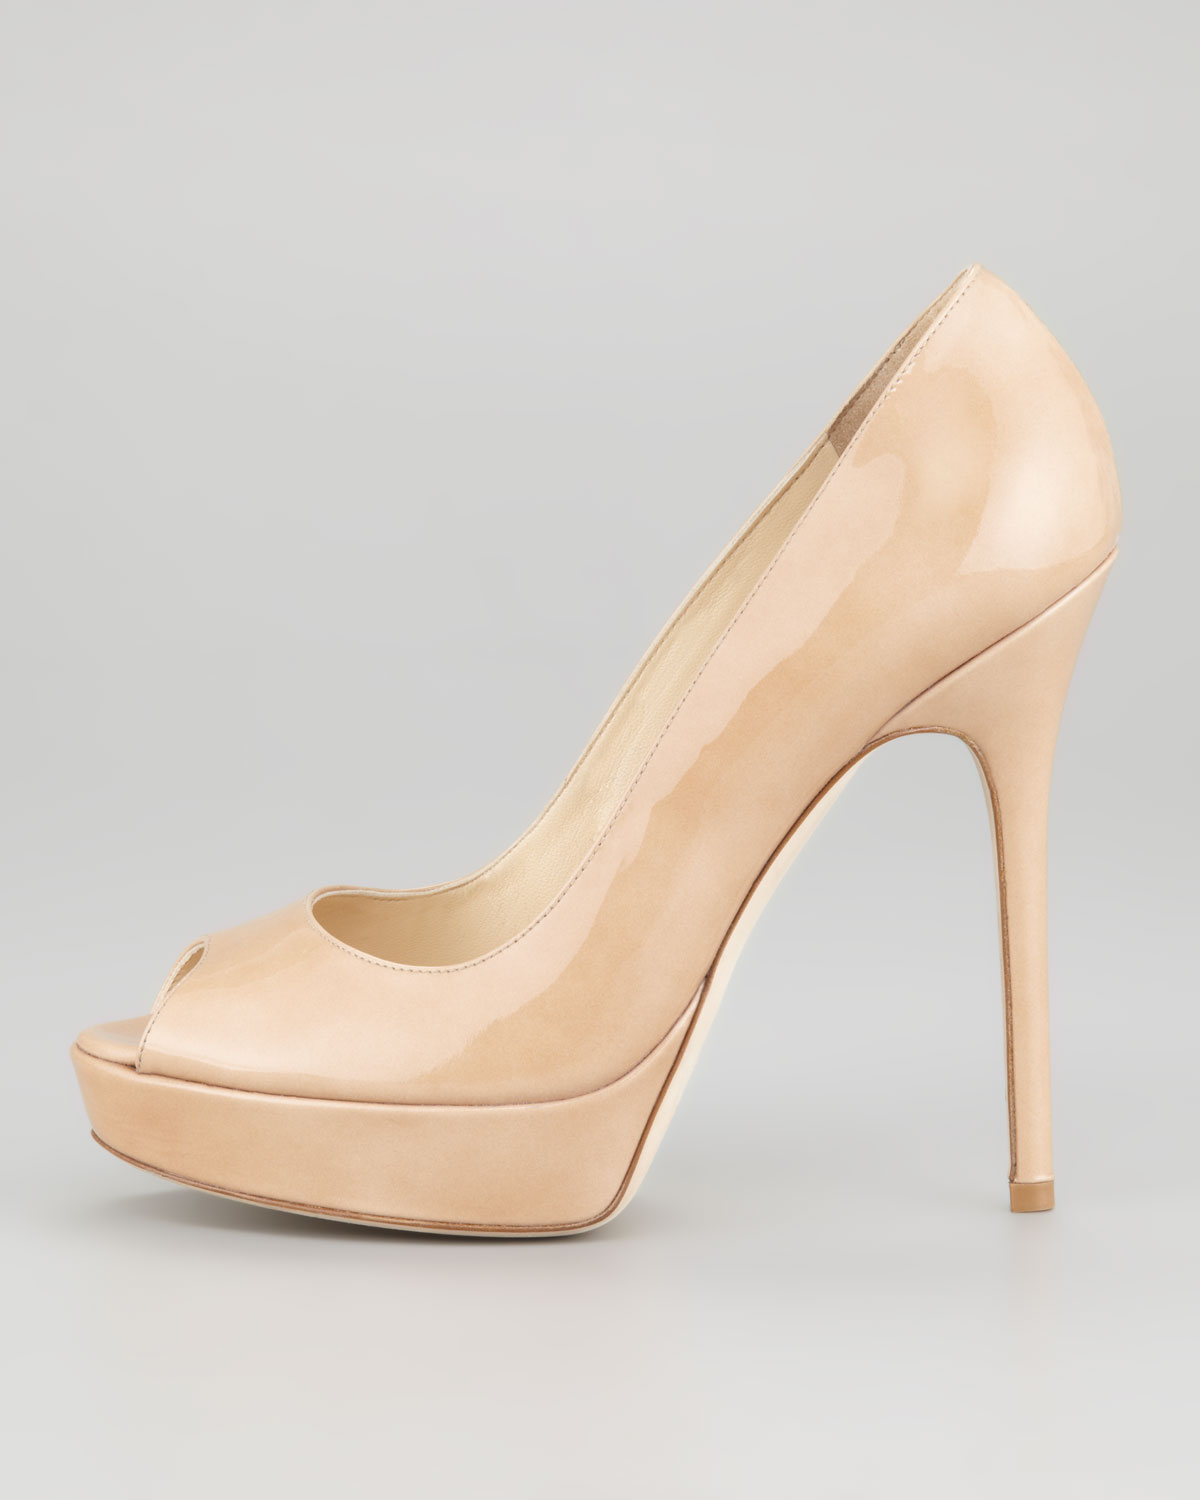 3fe35feaf12e Jimmy Choo Crown Peep Toe Pump Nude in Natural - Lyst